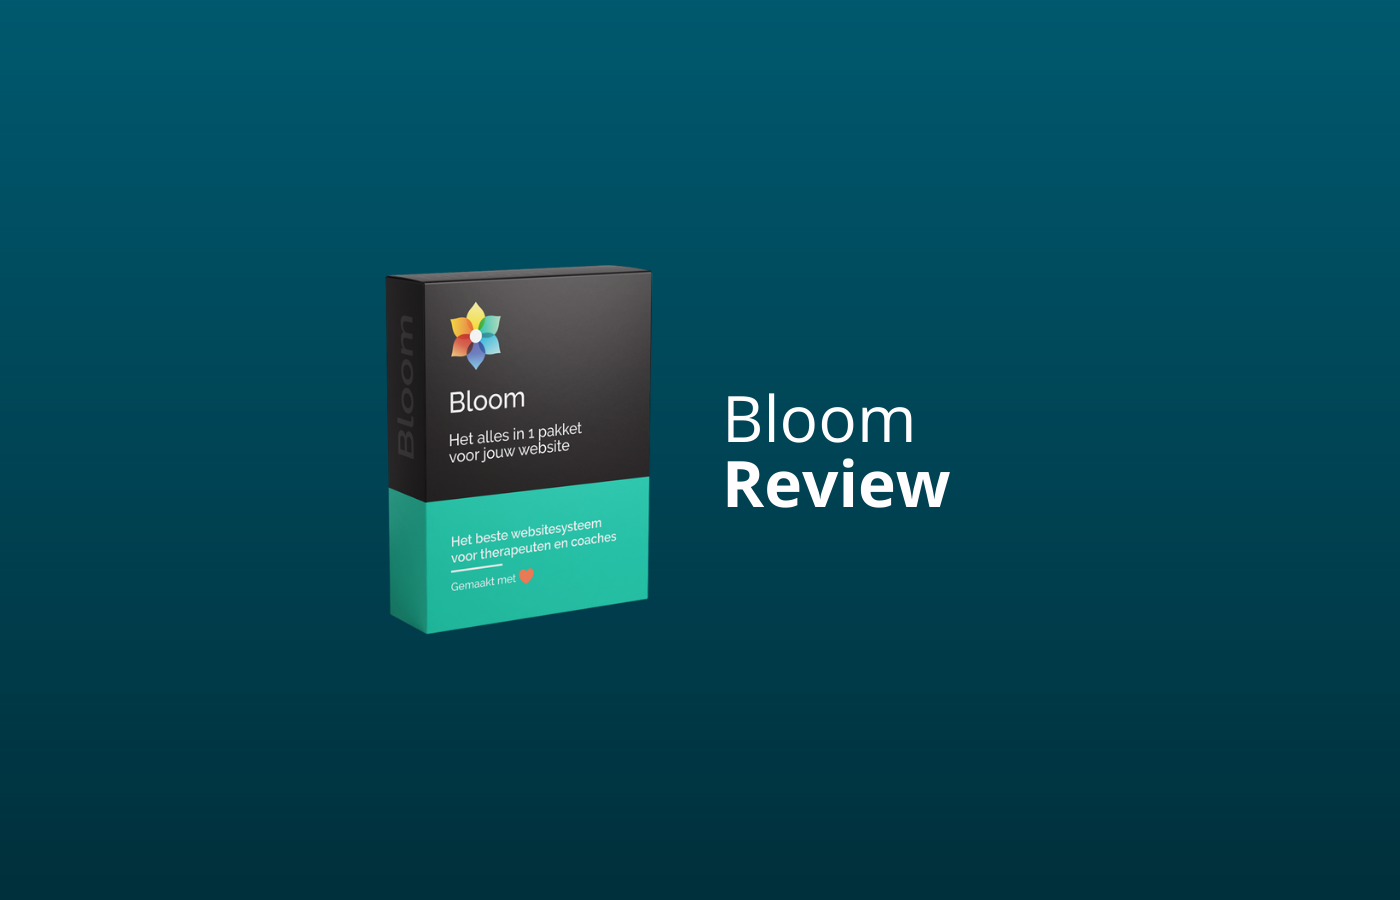 bloom review ervaringen